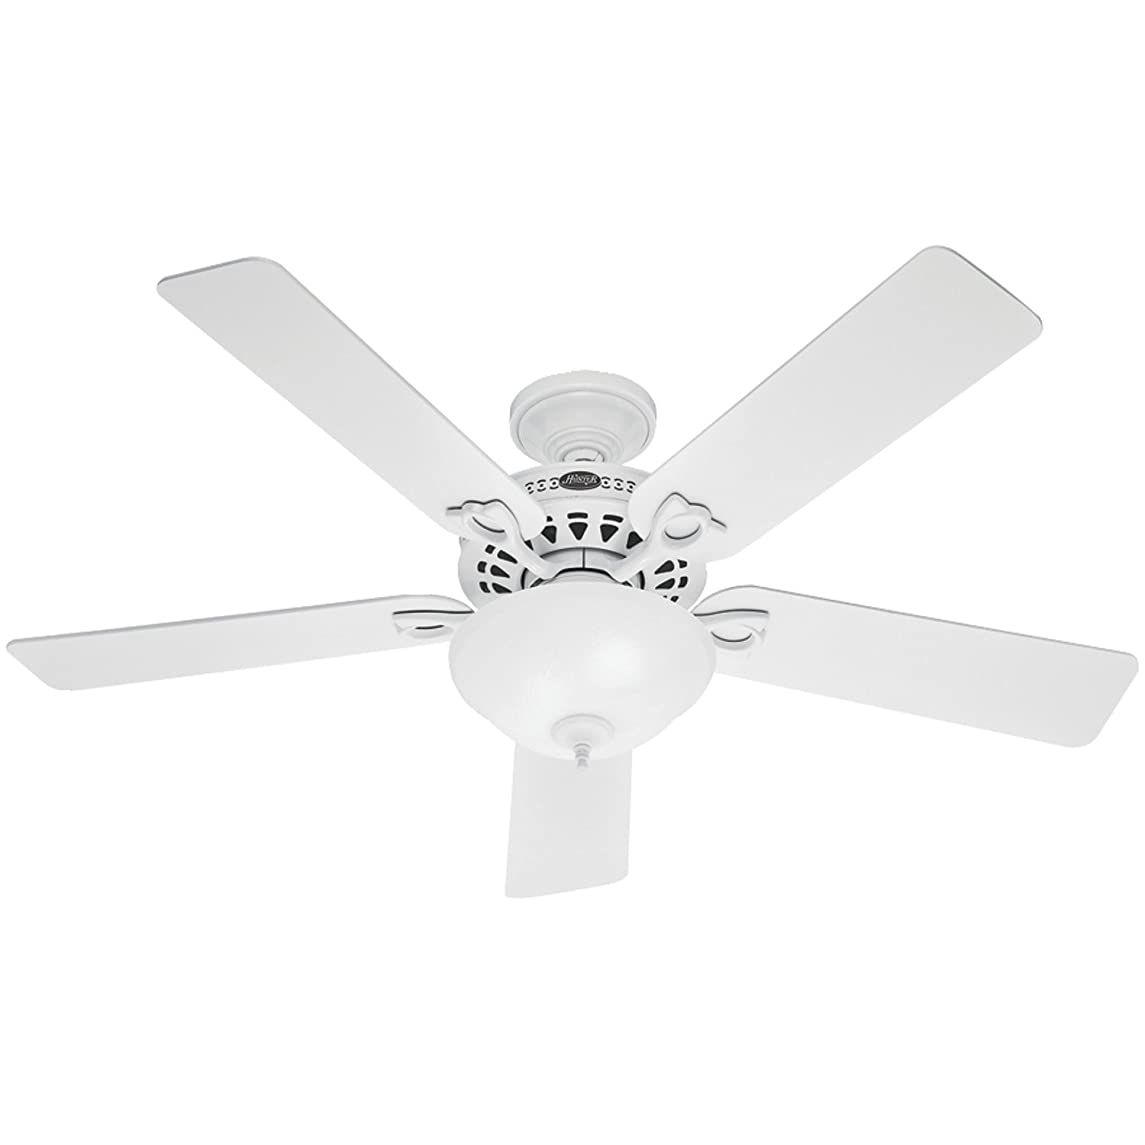 Hunter 53059 The Astoria 52-inch White Ceiling Fan with Five White/Light Oak Blades and Light Kit